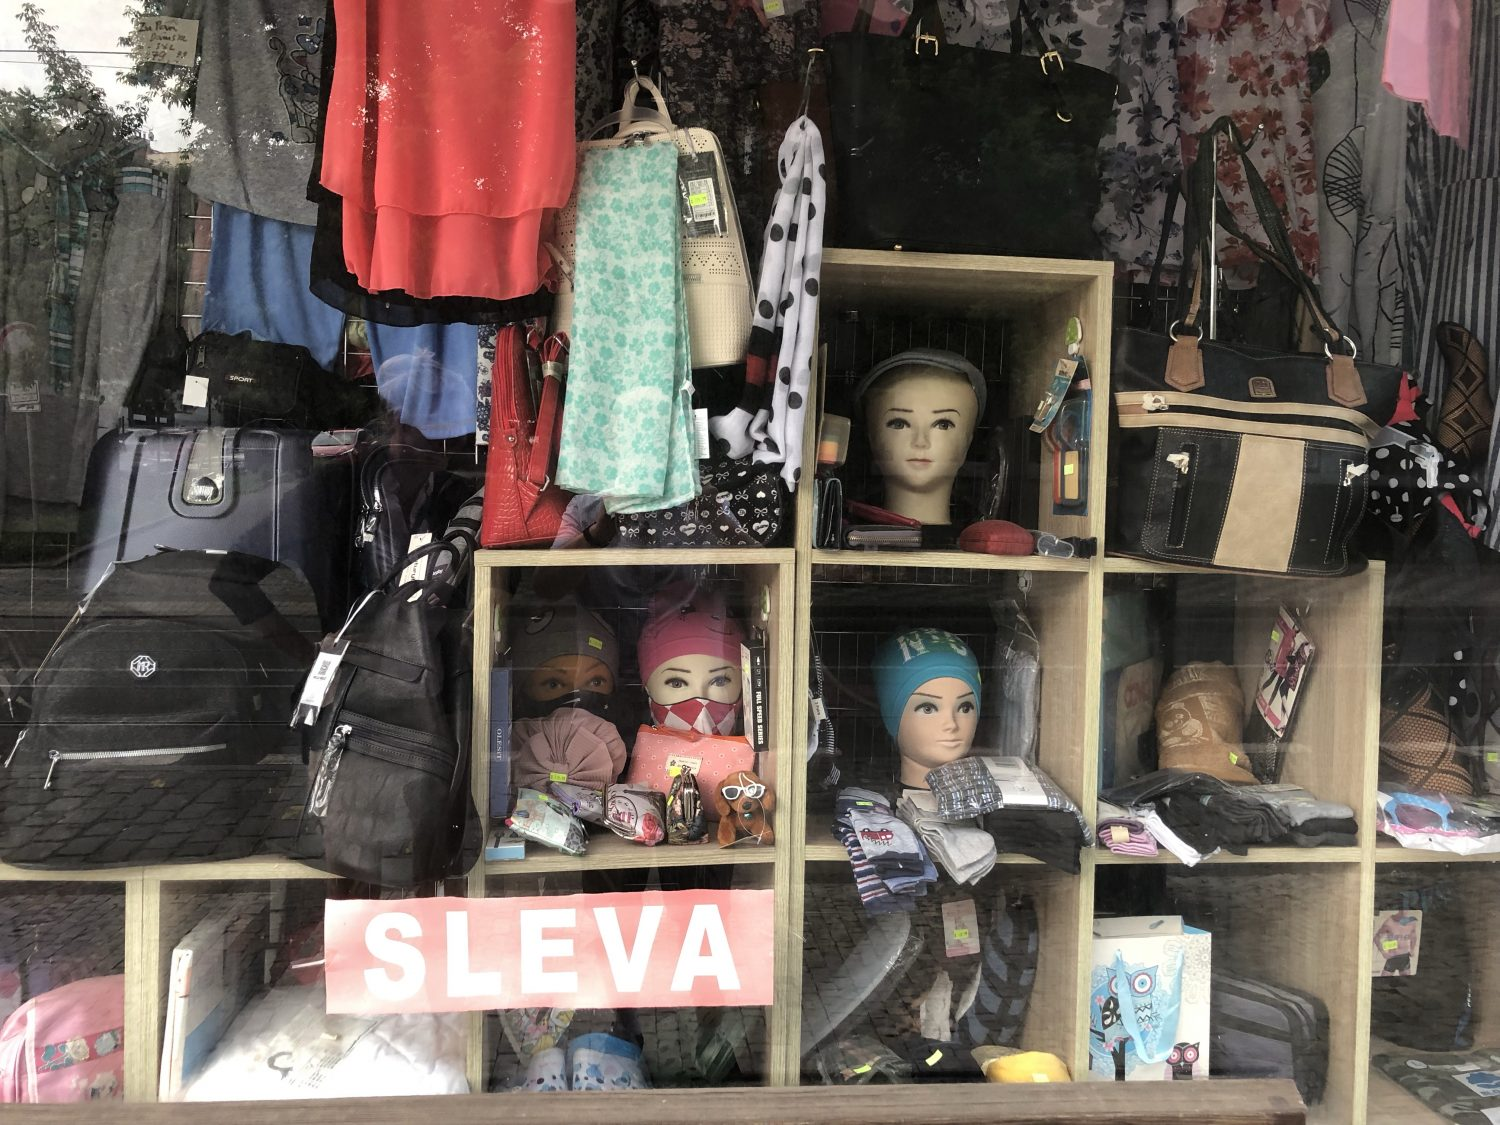 Prague Store Fronts – why are so many old and/or weird?